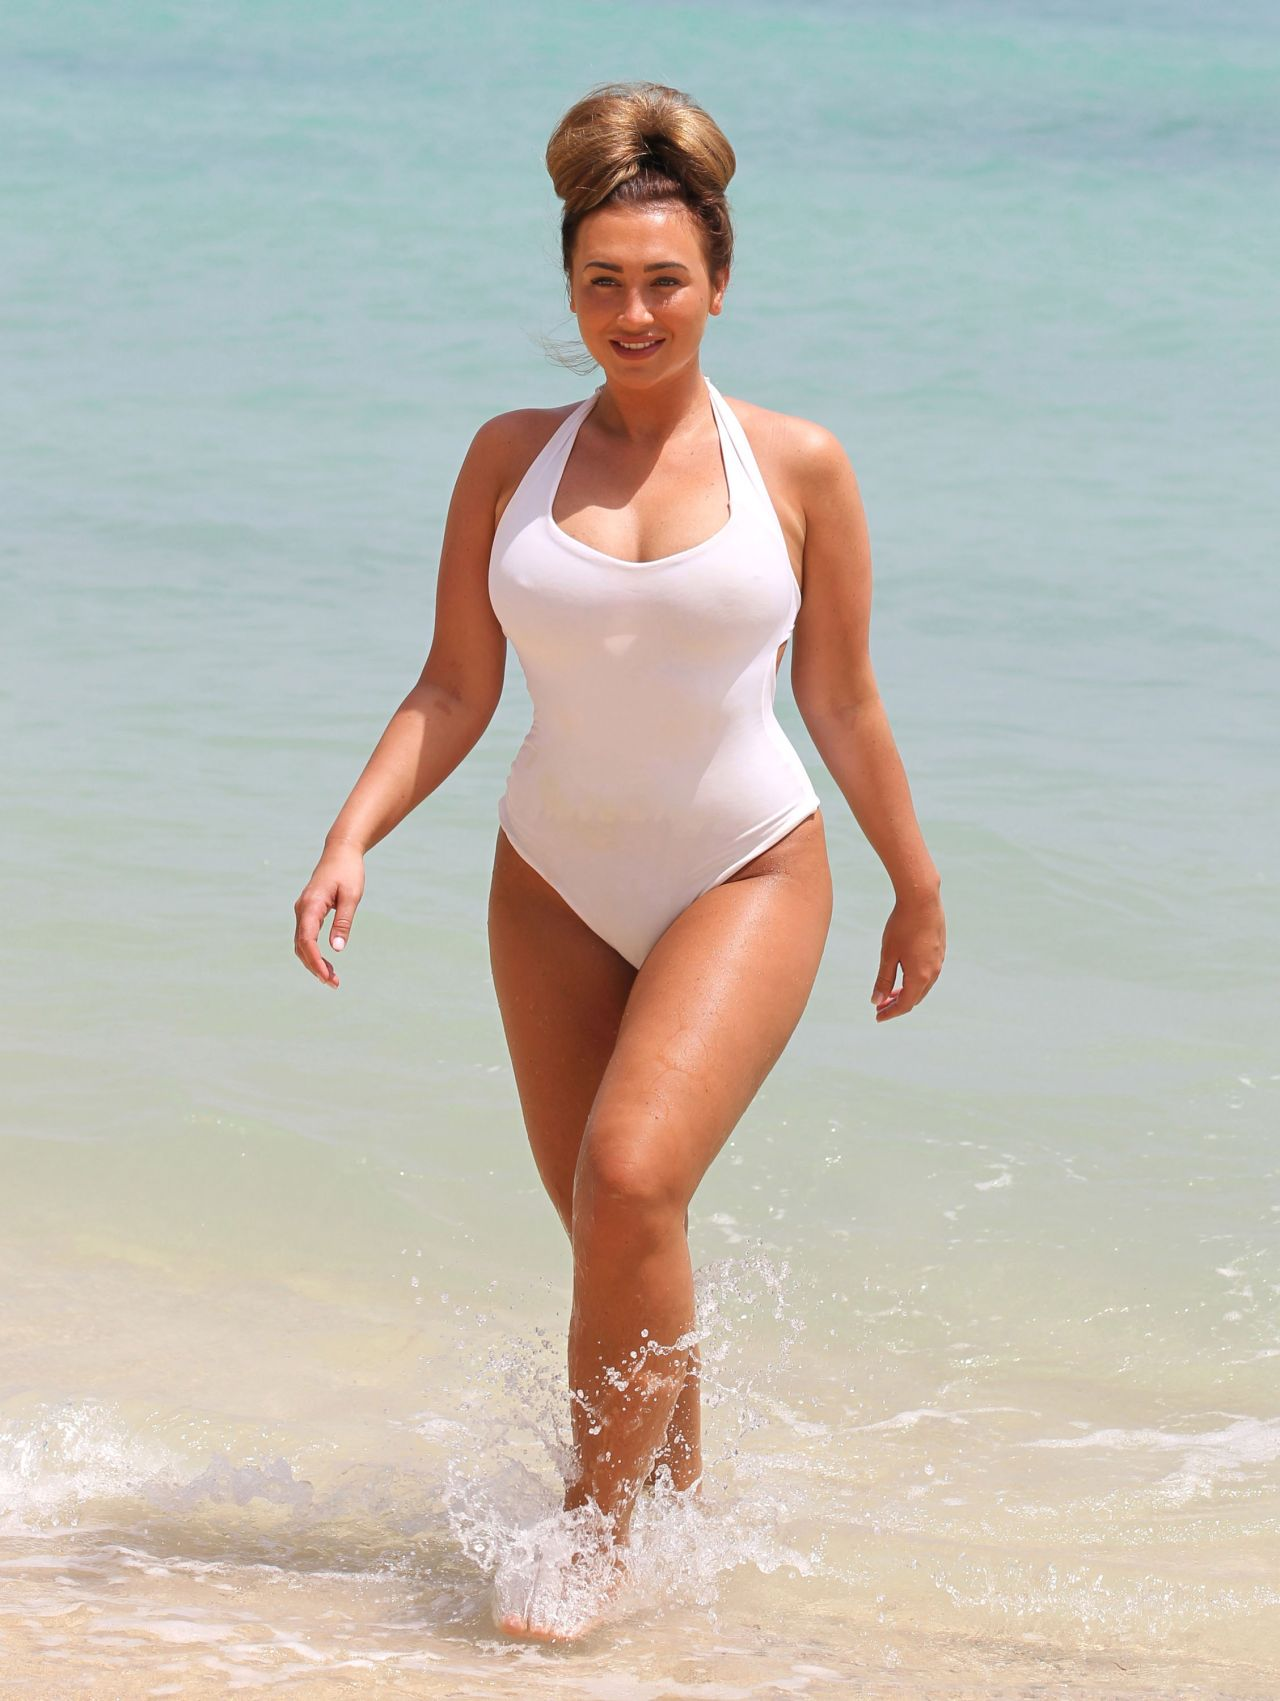 Lauren Goodger in White Swimsuit - Malibu, March 2014